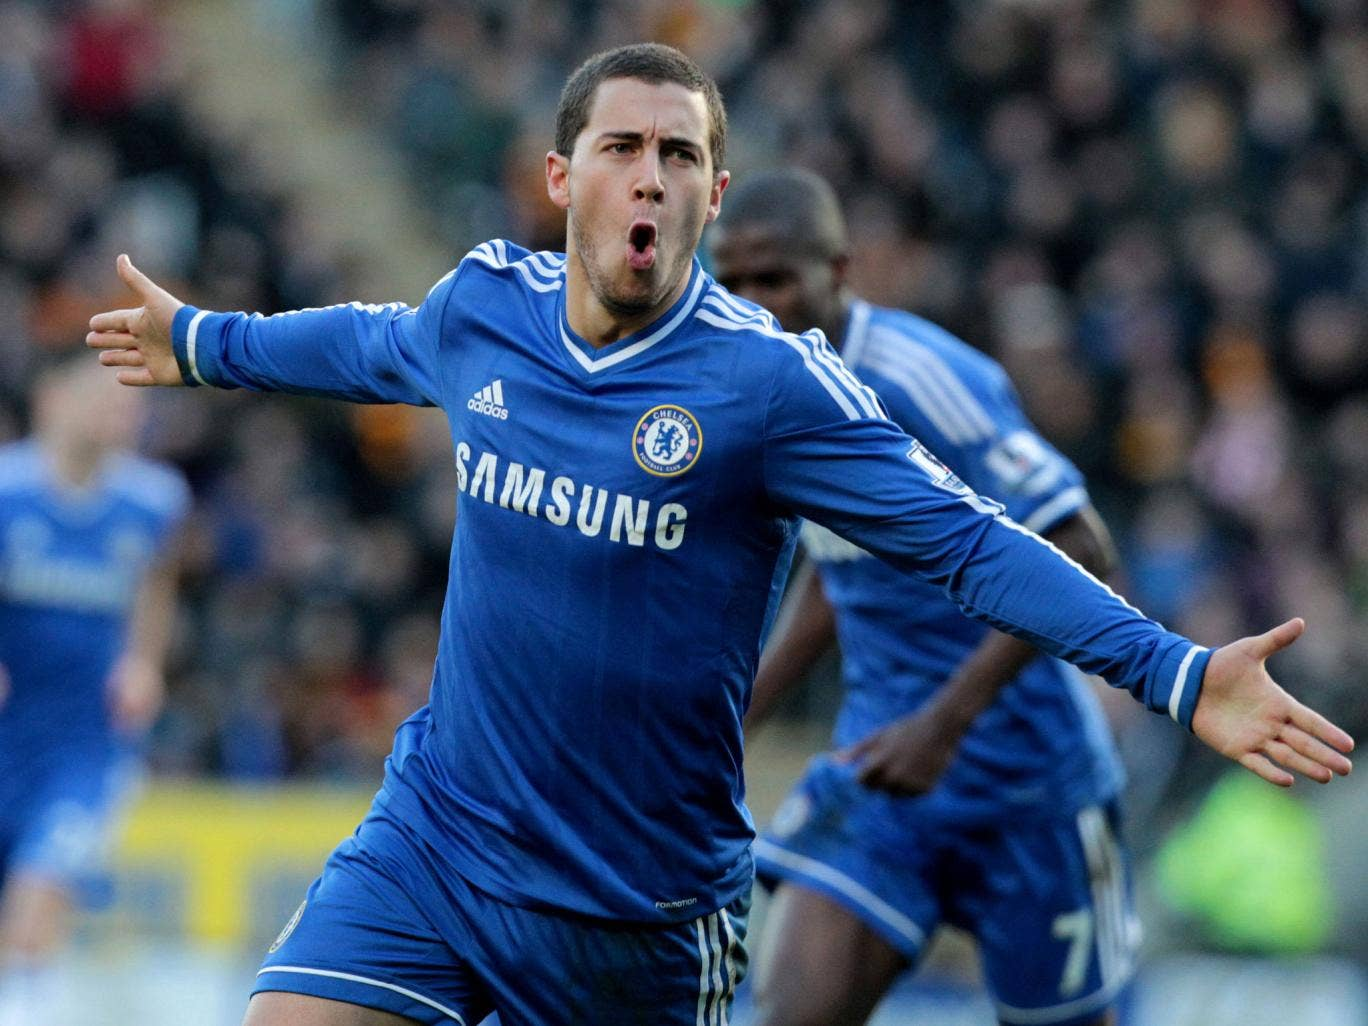 Eden Hazard has been tipped by his Chelsea manager to become one of the best players in the world as long as he remains in the Premier League